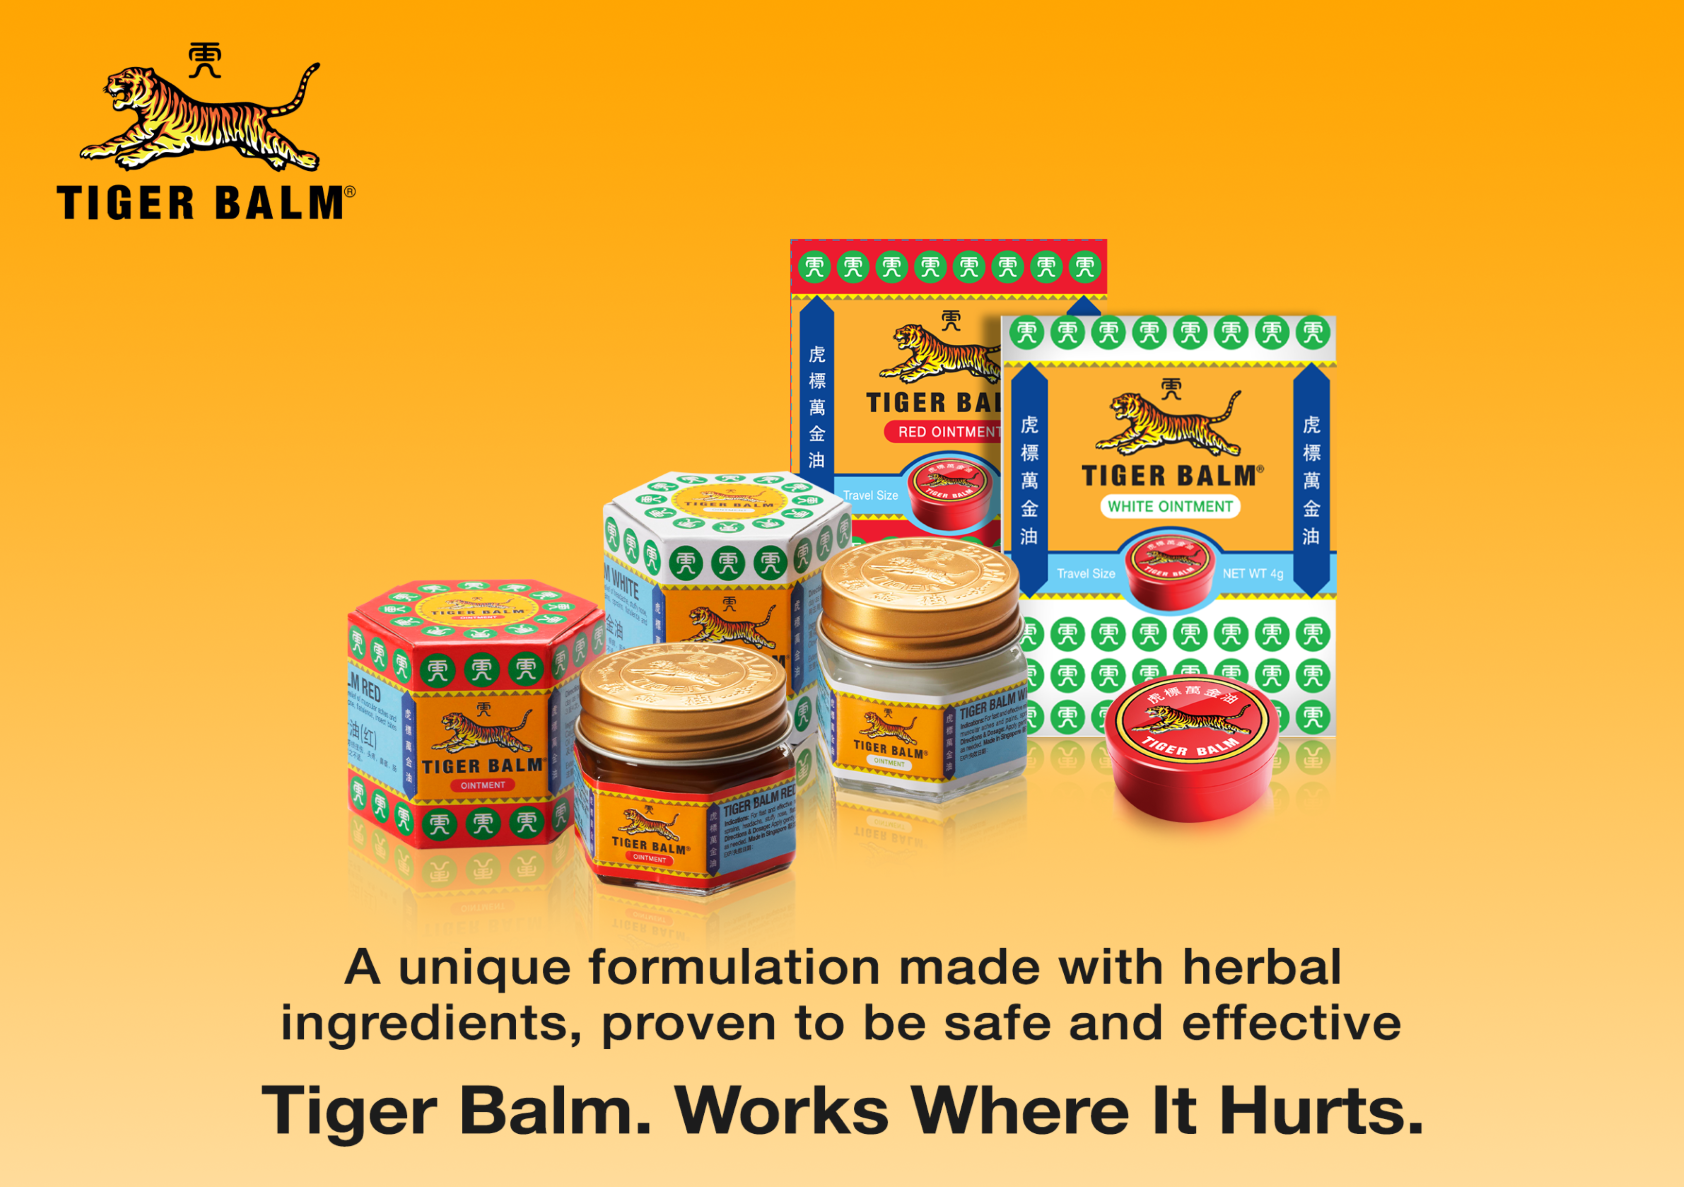 TIGER BALM BRAND COMING TO THE PHILIPPINES (Officially!)